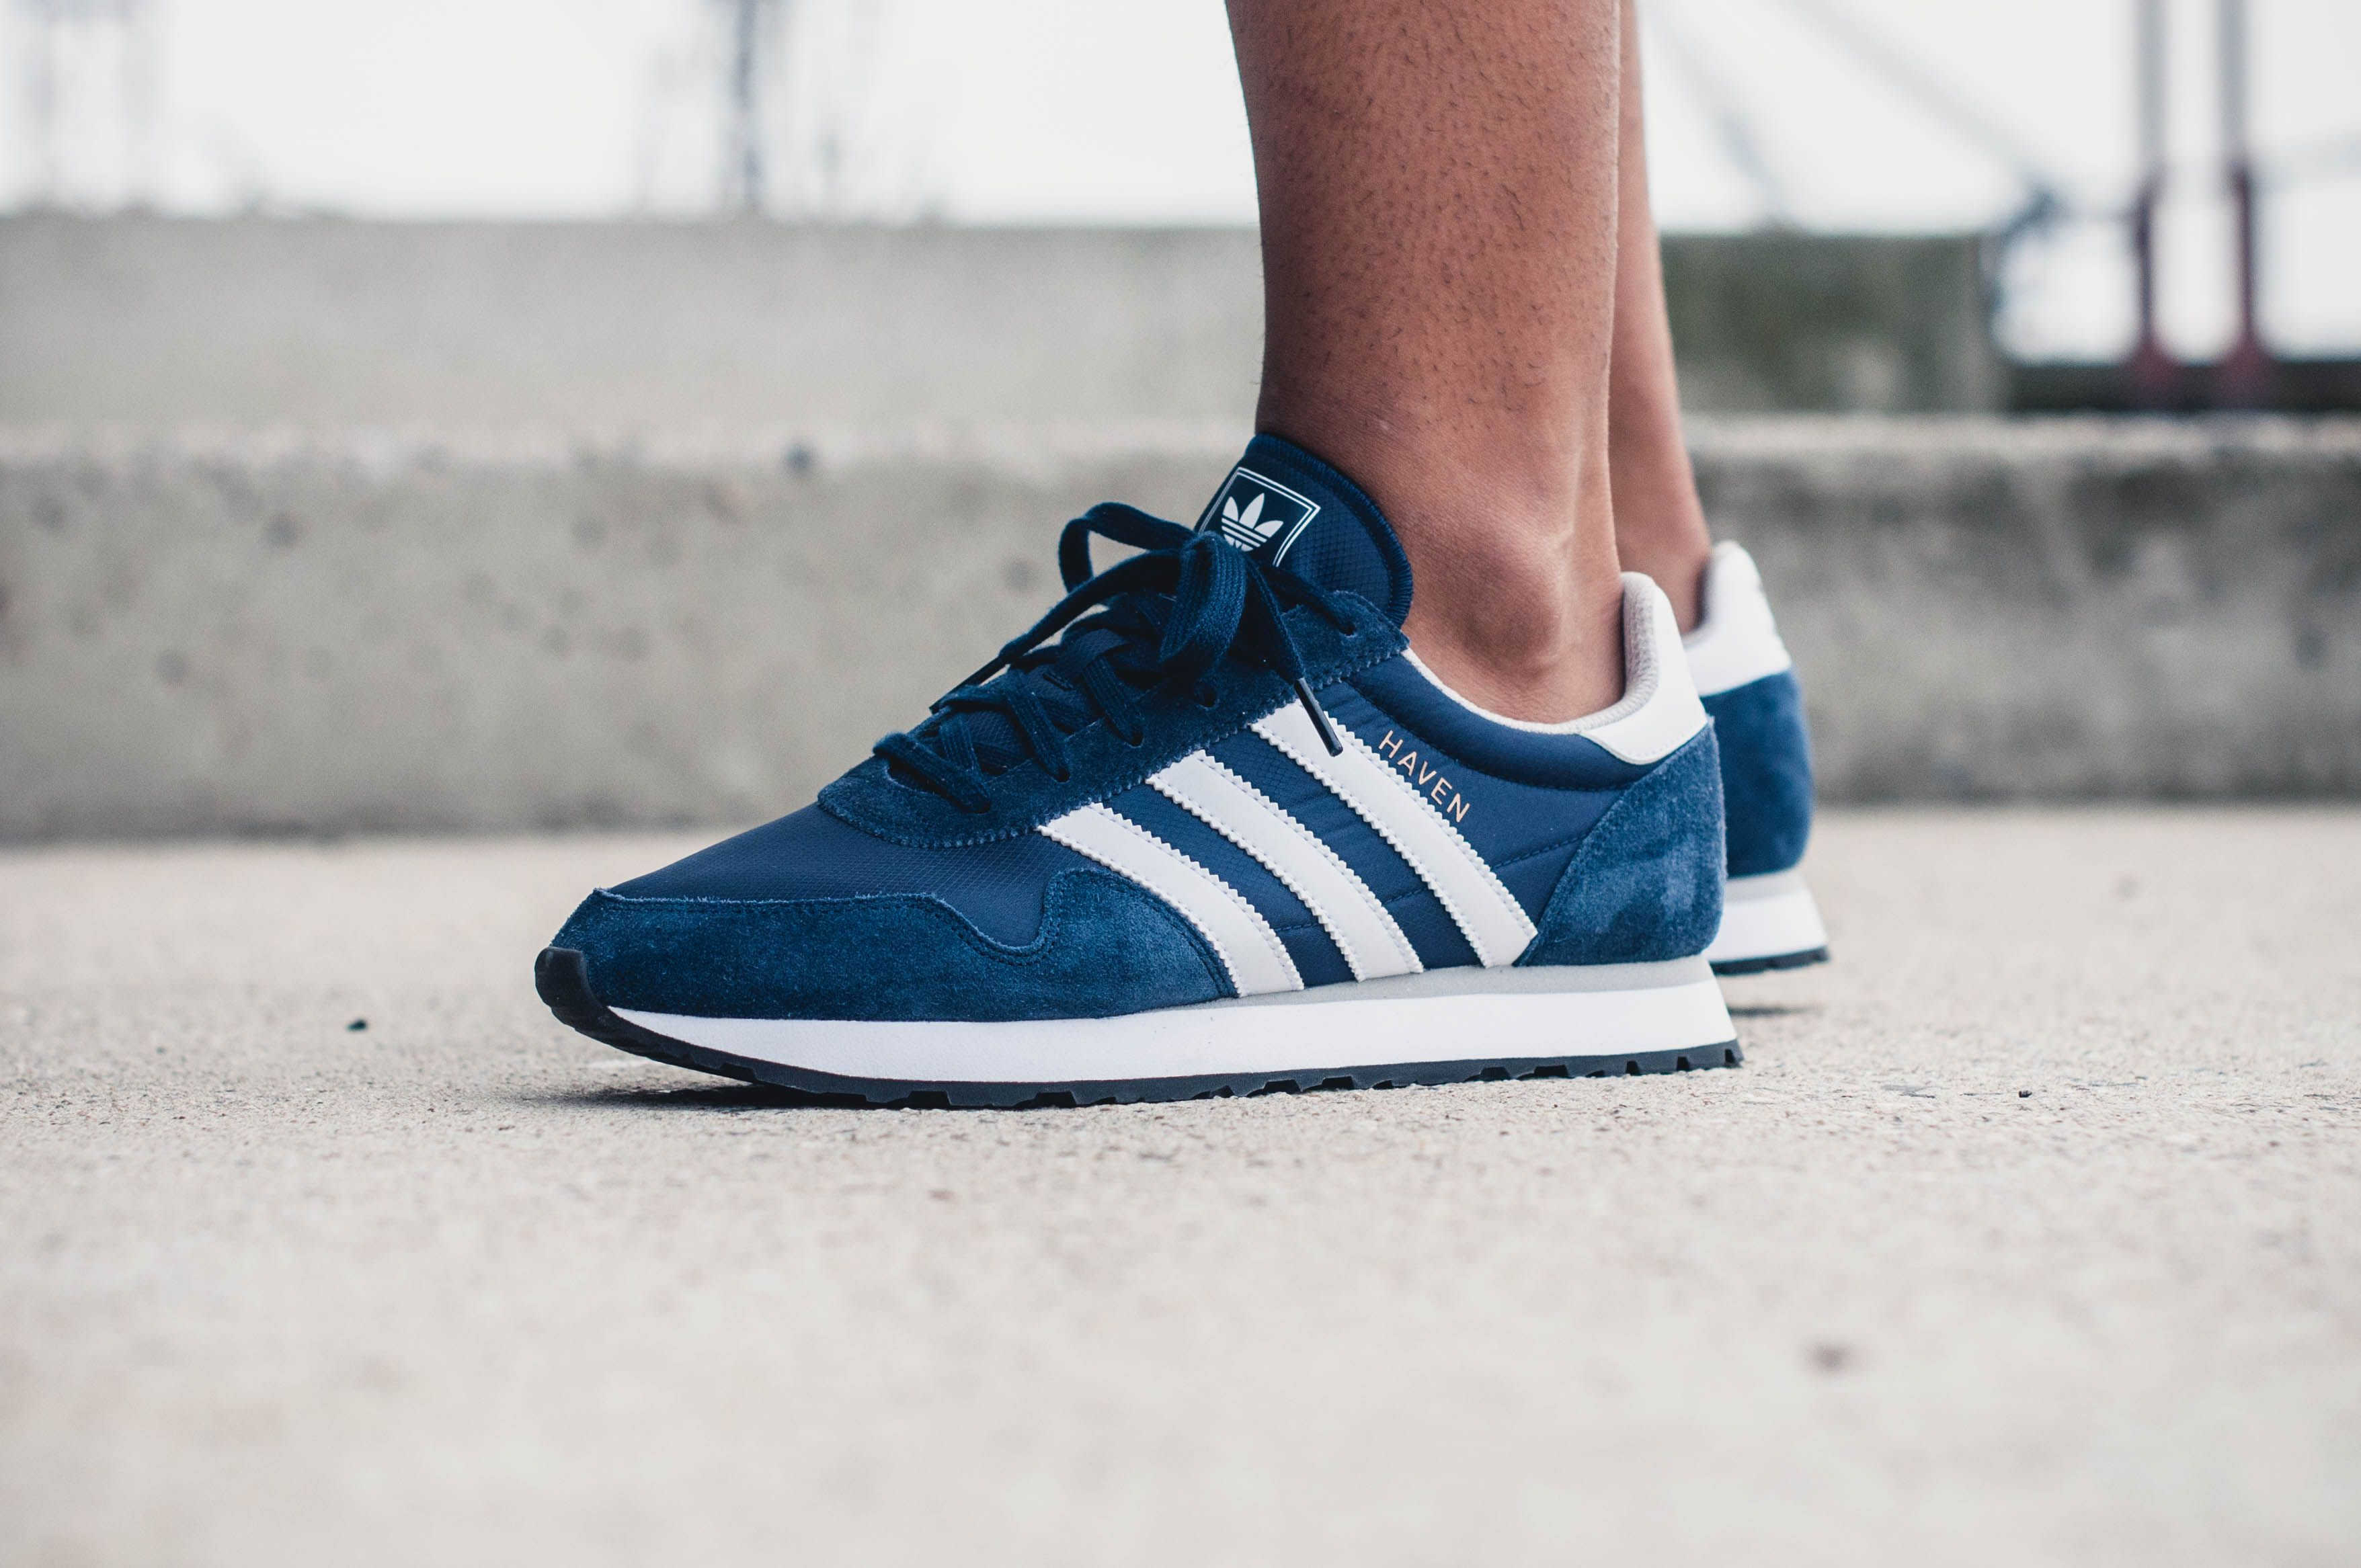 Adidas Haven in Collegiate Navy   Street Sneakers   Pinterest ... b9182270d7